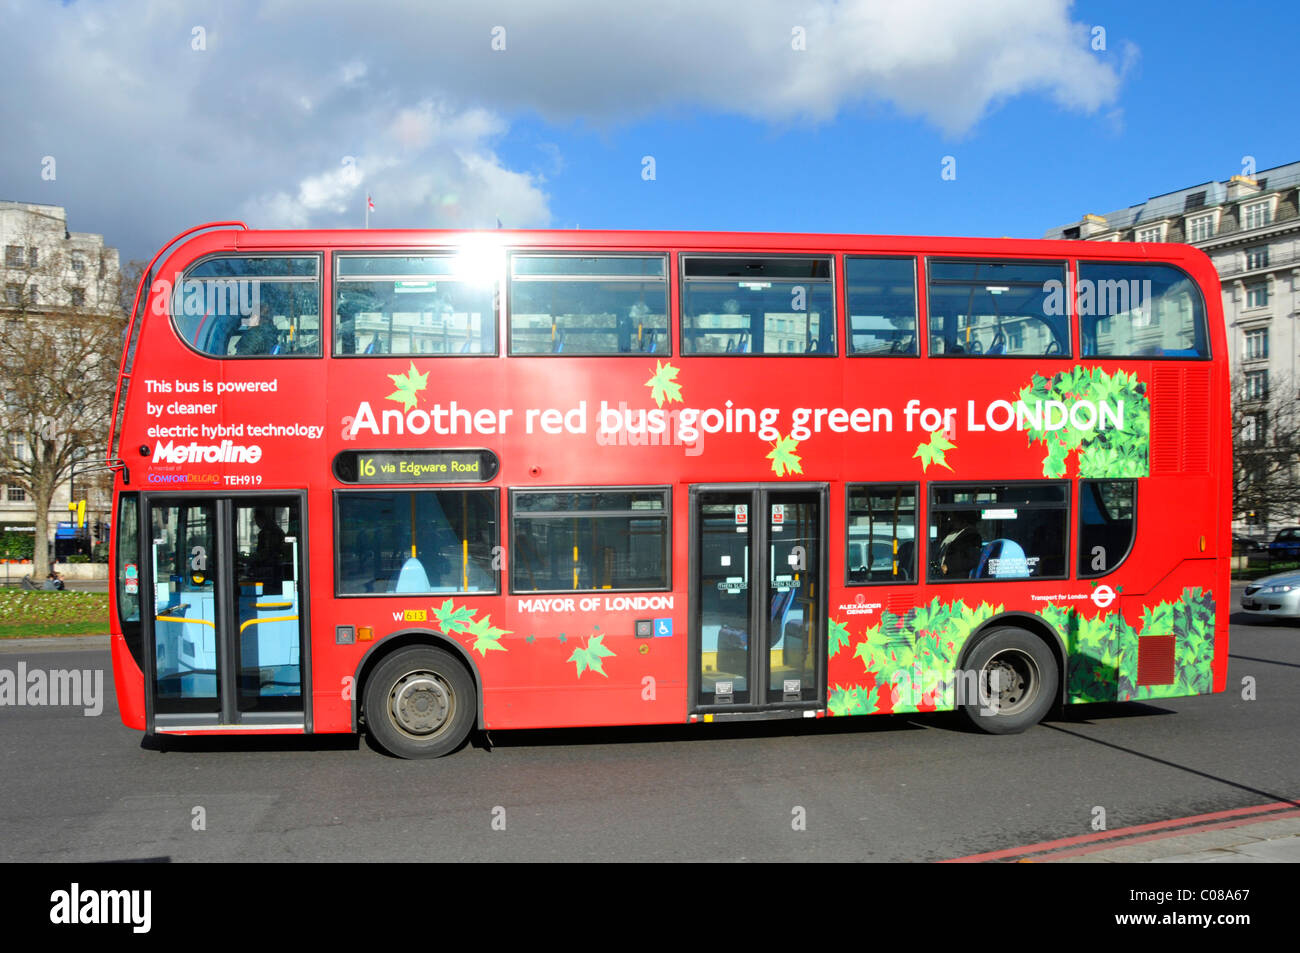 Sun glint off side of green electric hybrid public transport double decker London red bus operated by Metroline - Stock Image